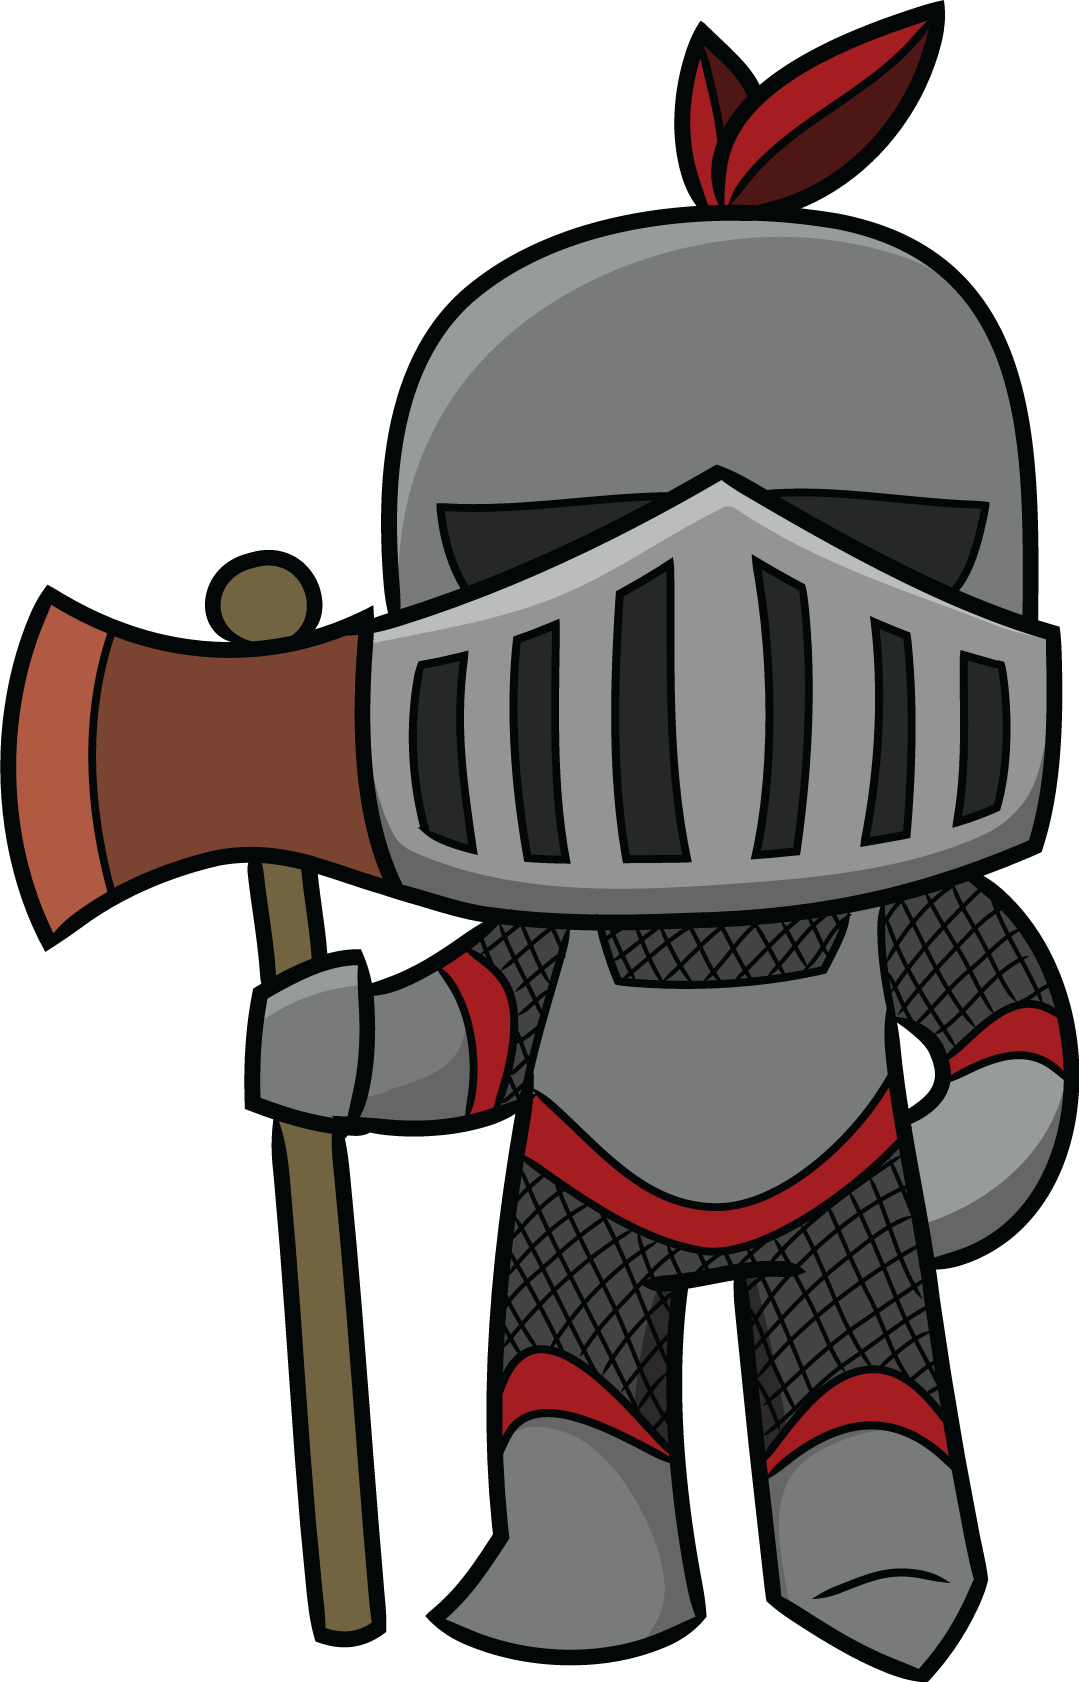 1079x1682 Knight Helmet Clipart Images